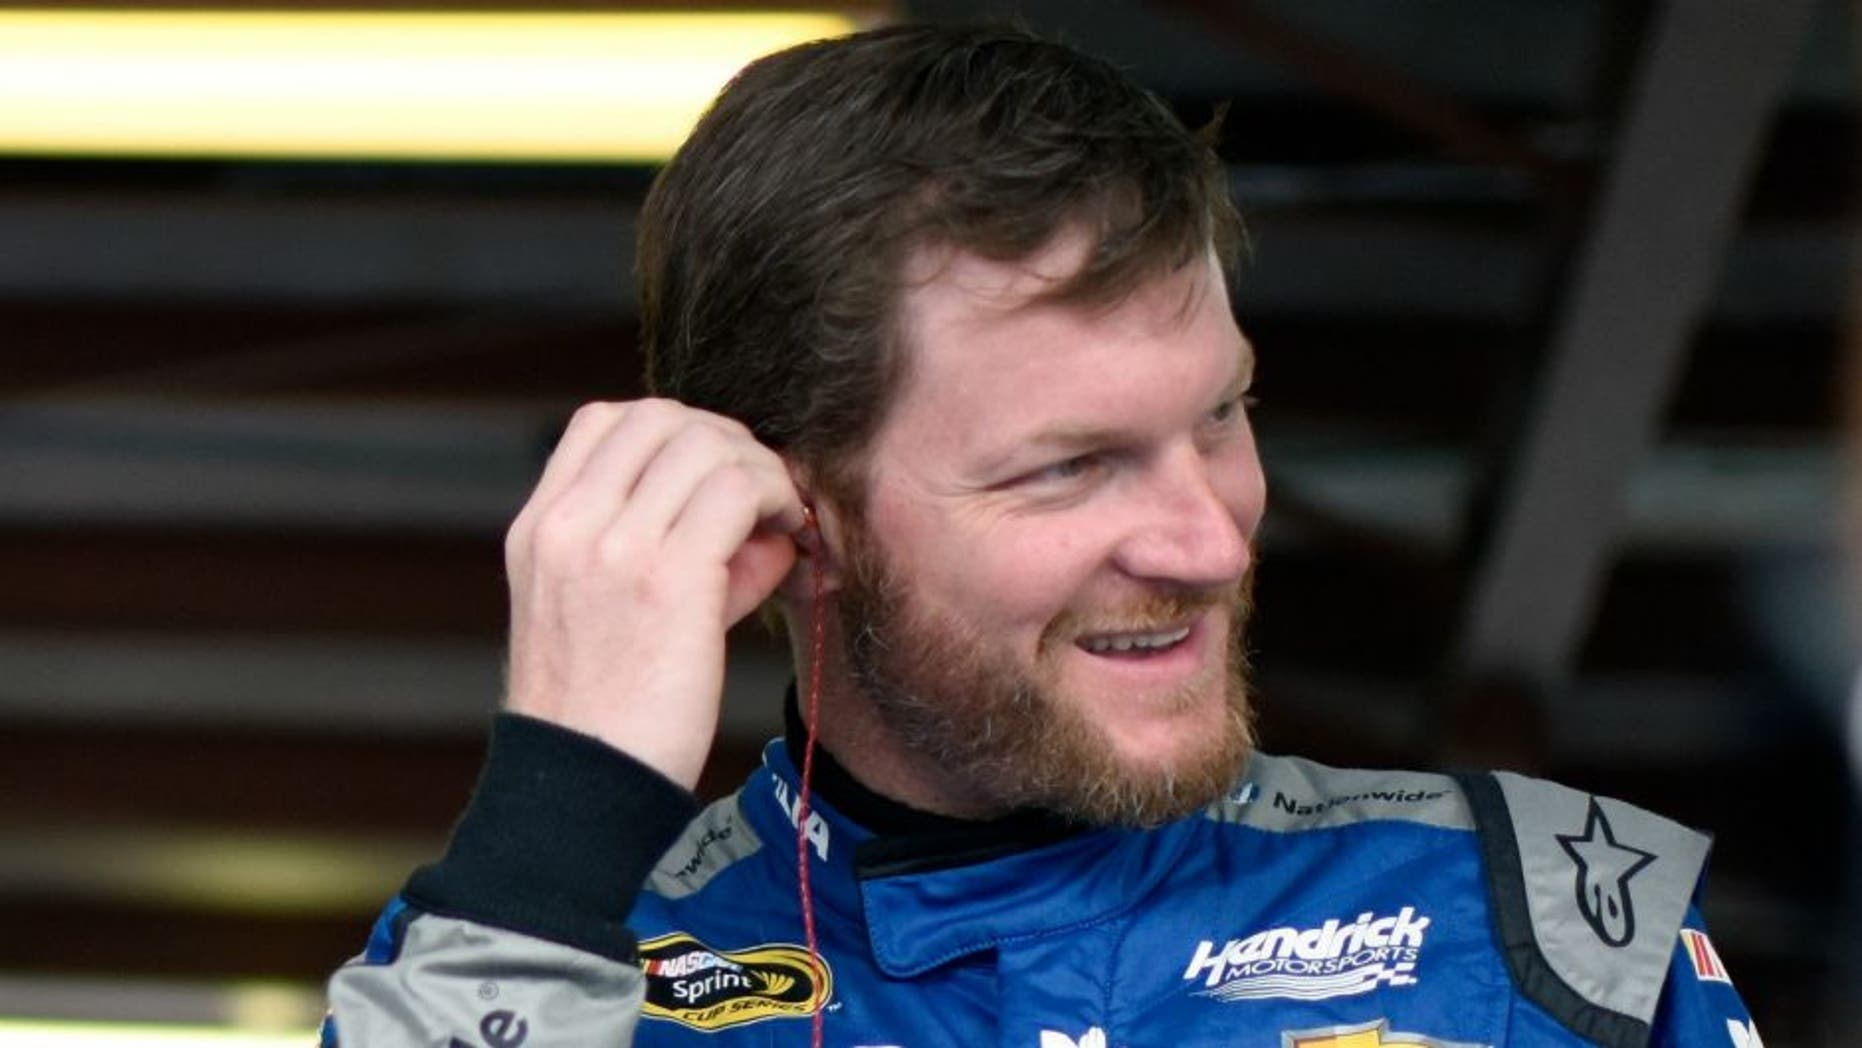 during practice for the NASCAR Sprint Cup Series GEICO 500 at Talladega Superspeedway on April 29, 2016 in Talladega, Alabama.,TALLADEGA, AL - APRIL 29: Dale Earnhardt Jr, driver of the #88 Nationwide Chevrolet, stands in the garage area during practice for the NASCAR Sprint Cup Series GEICO 500 at Talladega Superspeedway on April 29, 2016 in Talladega, Alabama. (Photo by Jared C. Tilton/Getty Images)